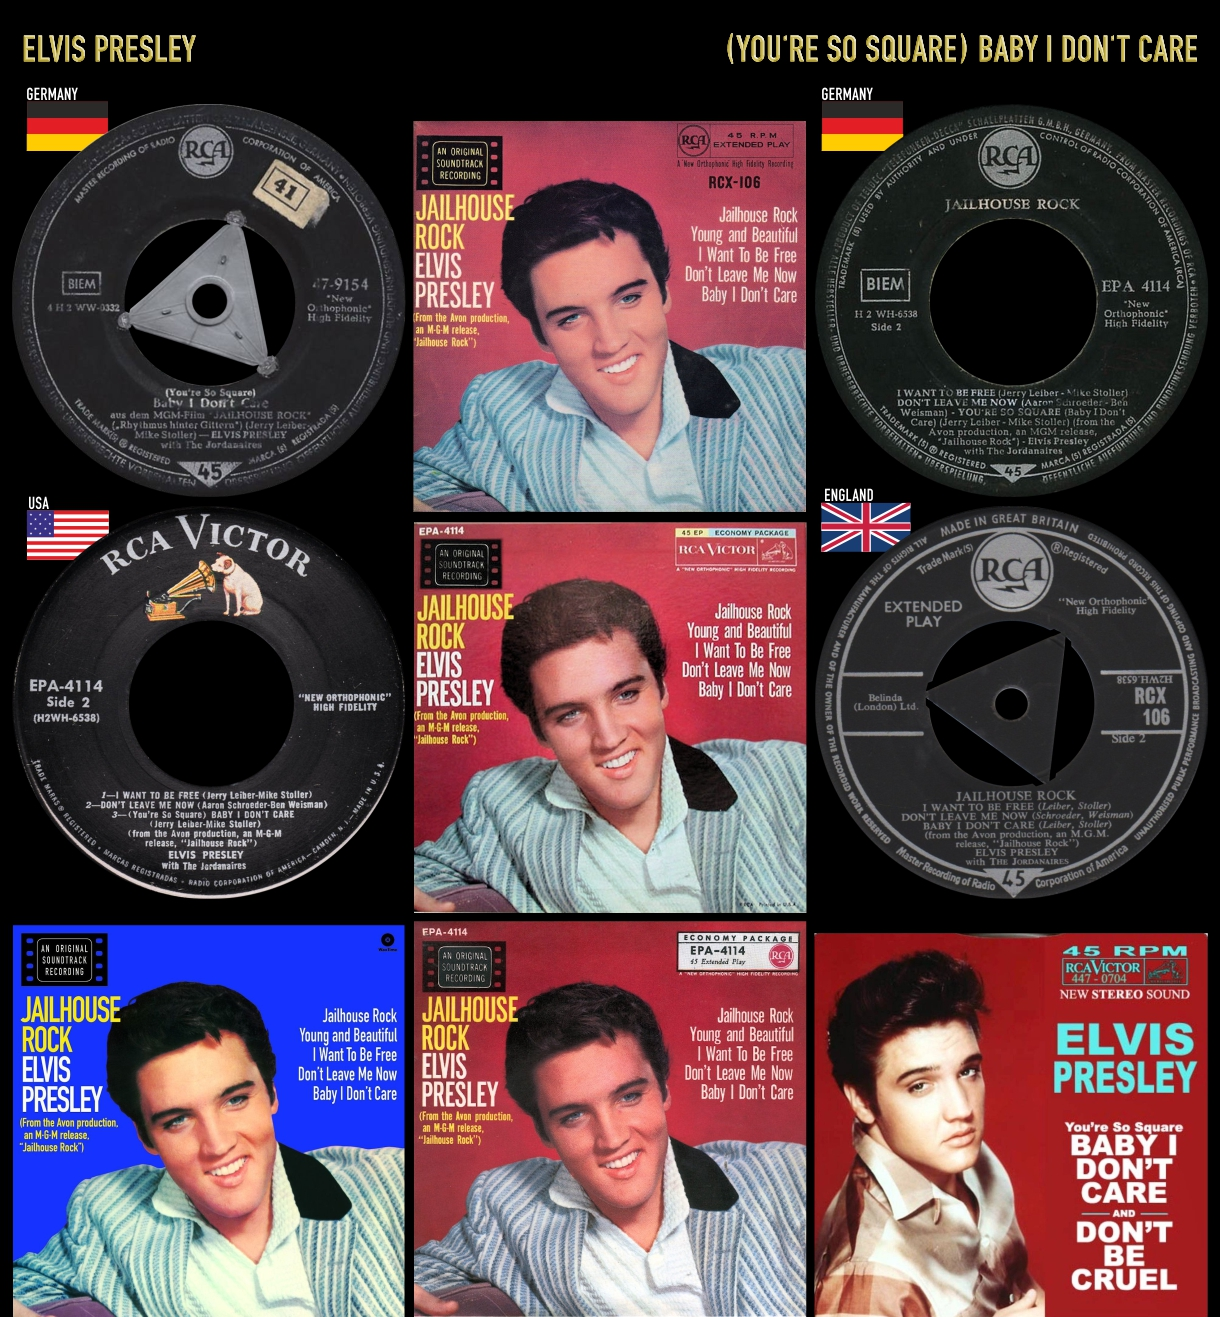 580118_Elvis Presley_Baby I Don't Care